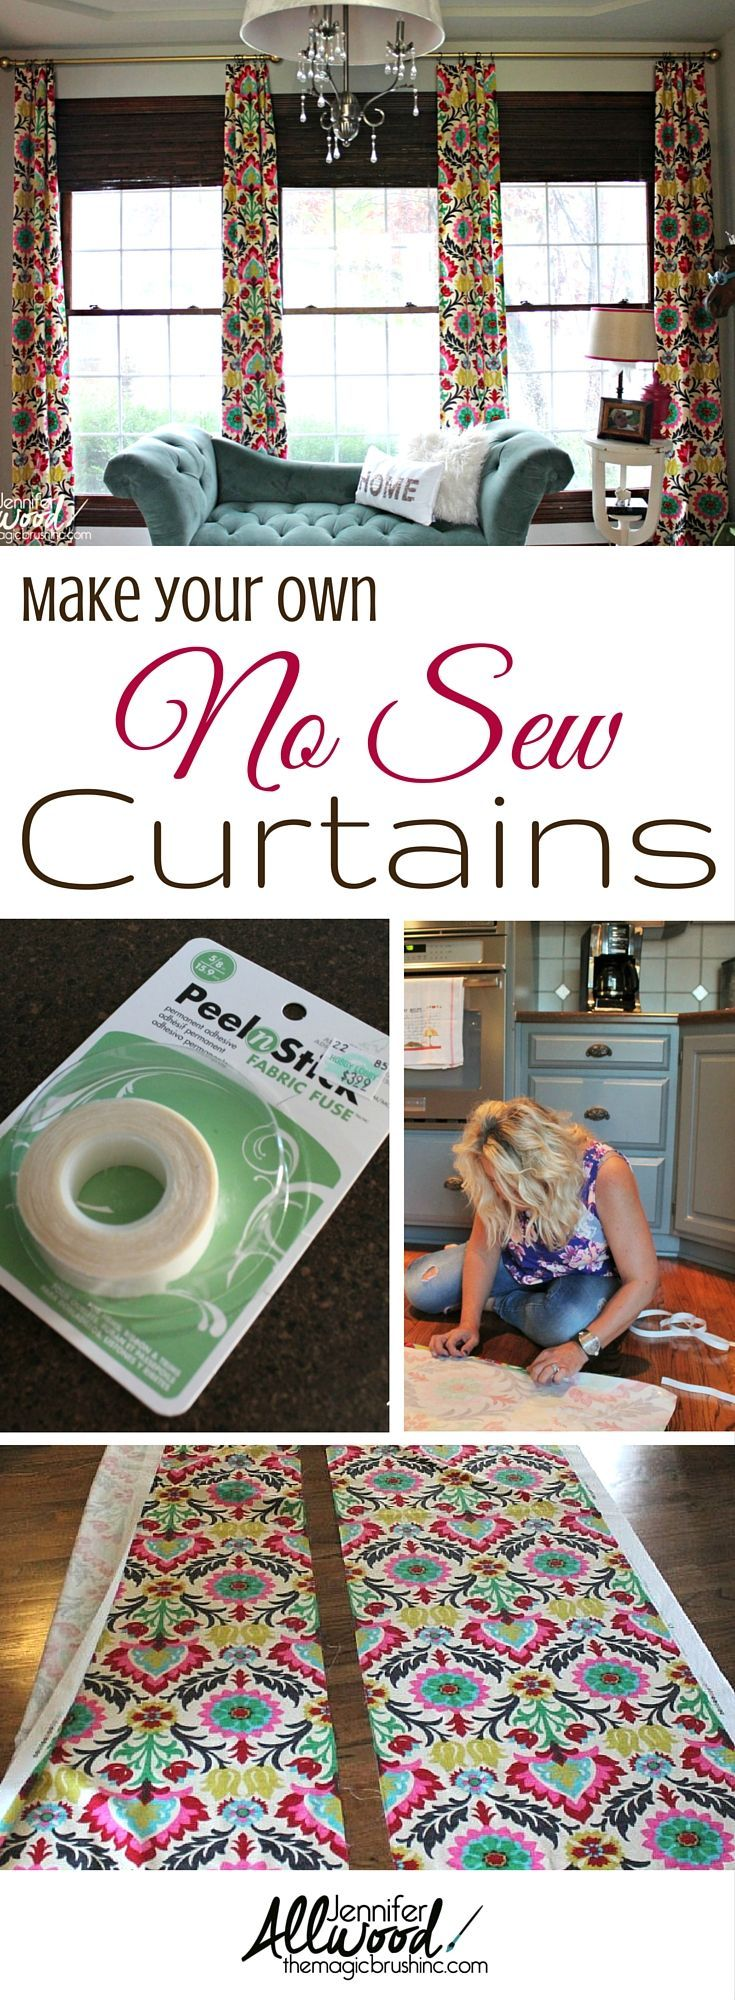 Office supplies news reviews and more make diy projects and ideas - The Happiest No Sew Diy Curtains For My Office